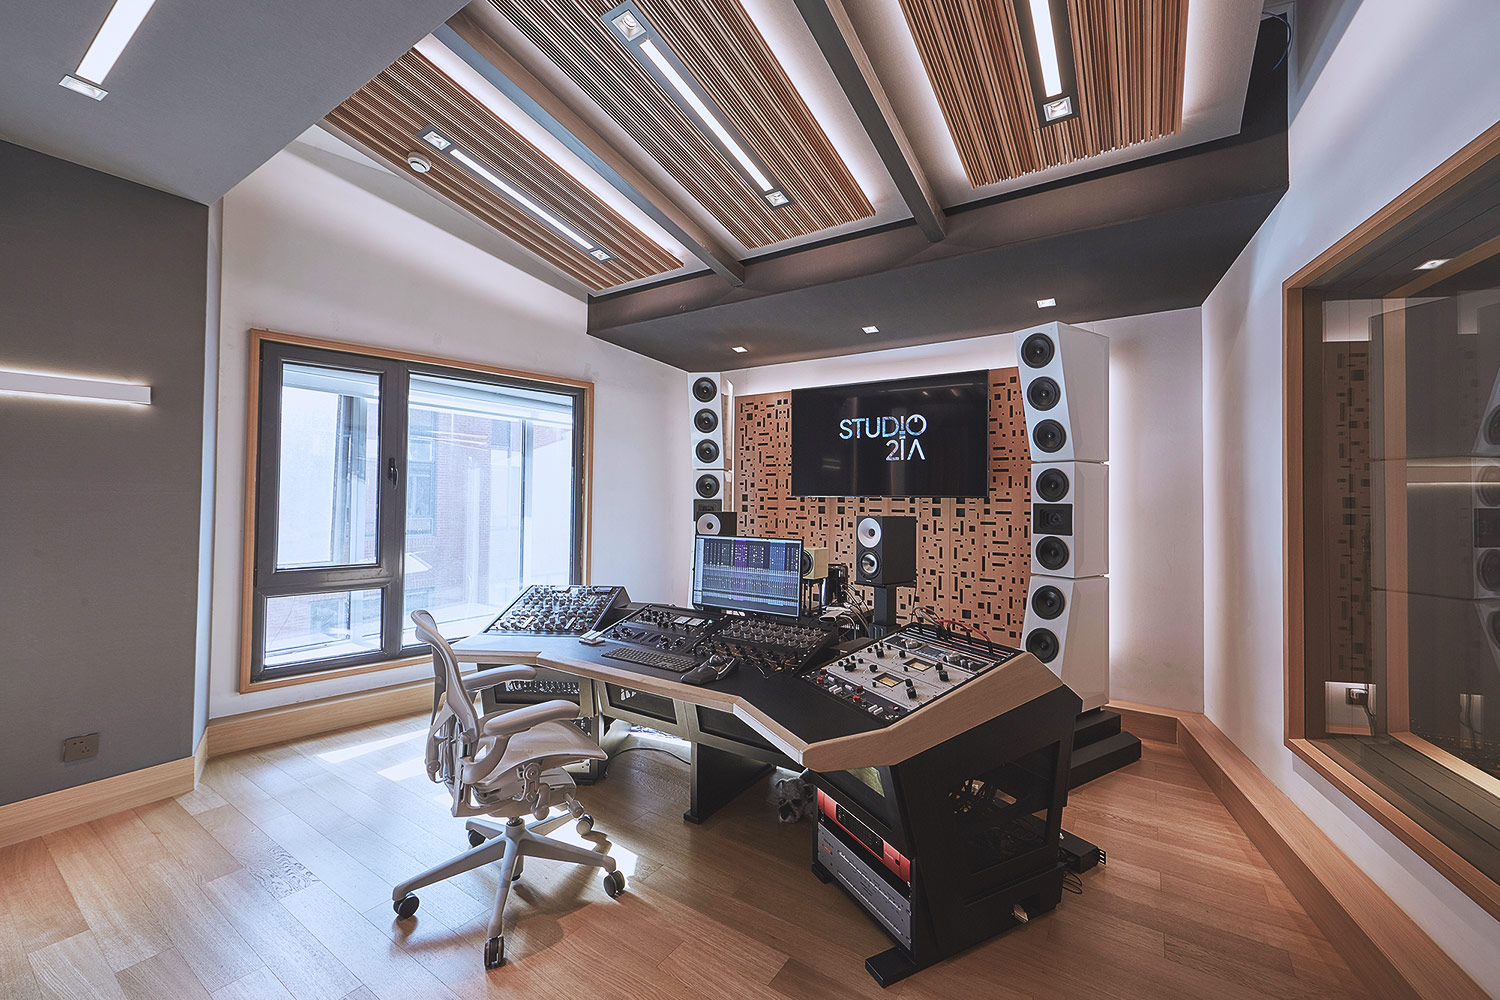 Intrigued by WSDG's reputation in designing the best recording studios in the world, multi-talented recording and mixing engineer TC Zhou started a deep collaboration with our global team for his brand-new Studio 21A facility in Beijing, China. Control Room C Mastering Suite.